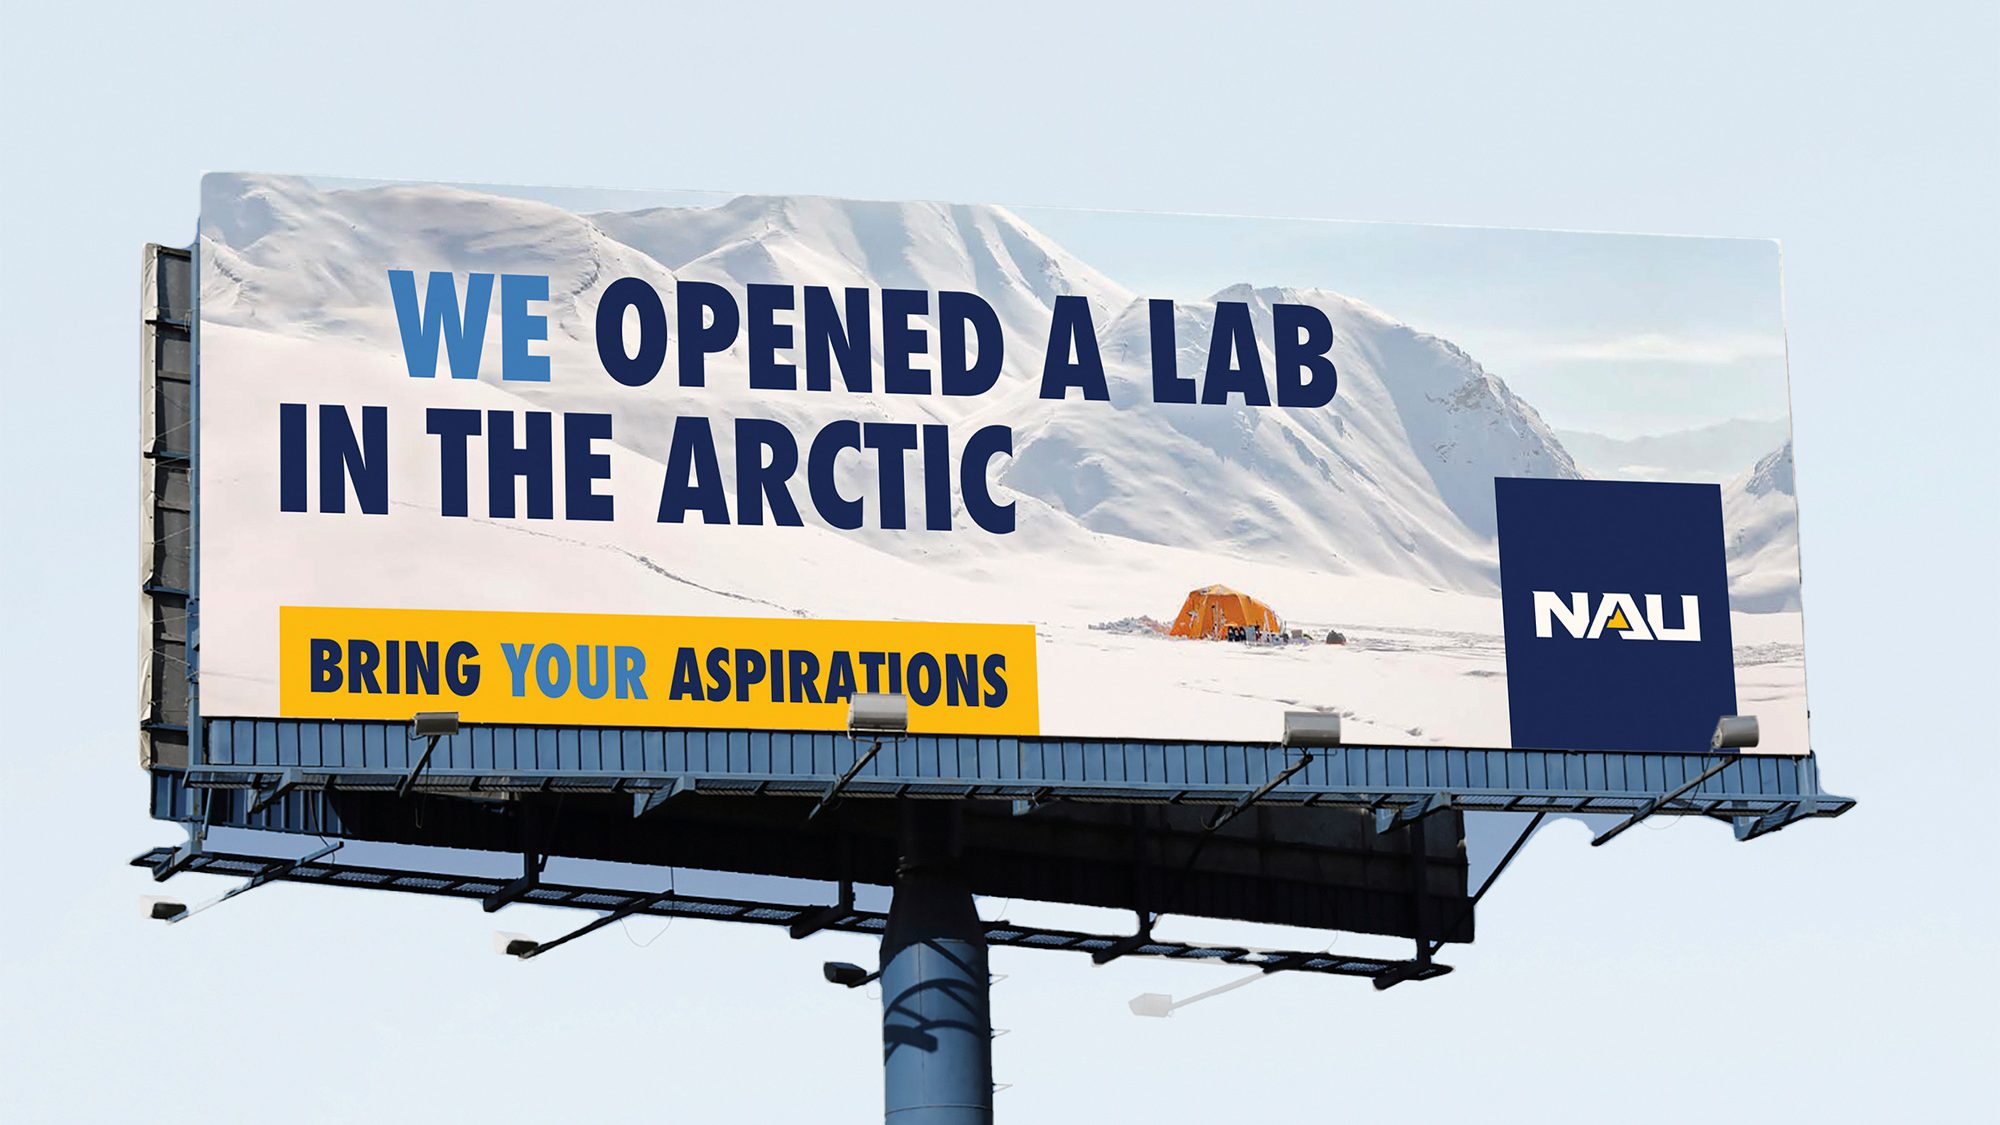 We opened a lab in the arctic.